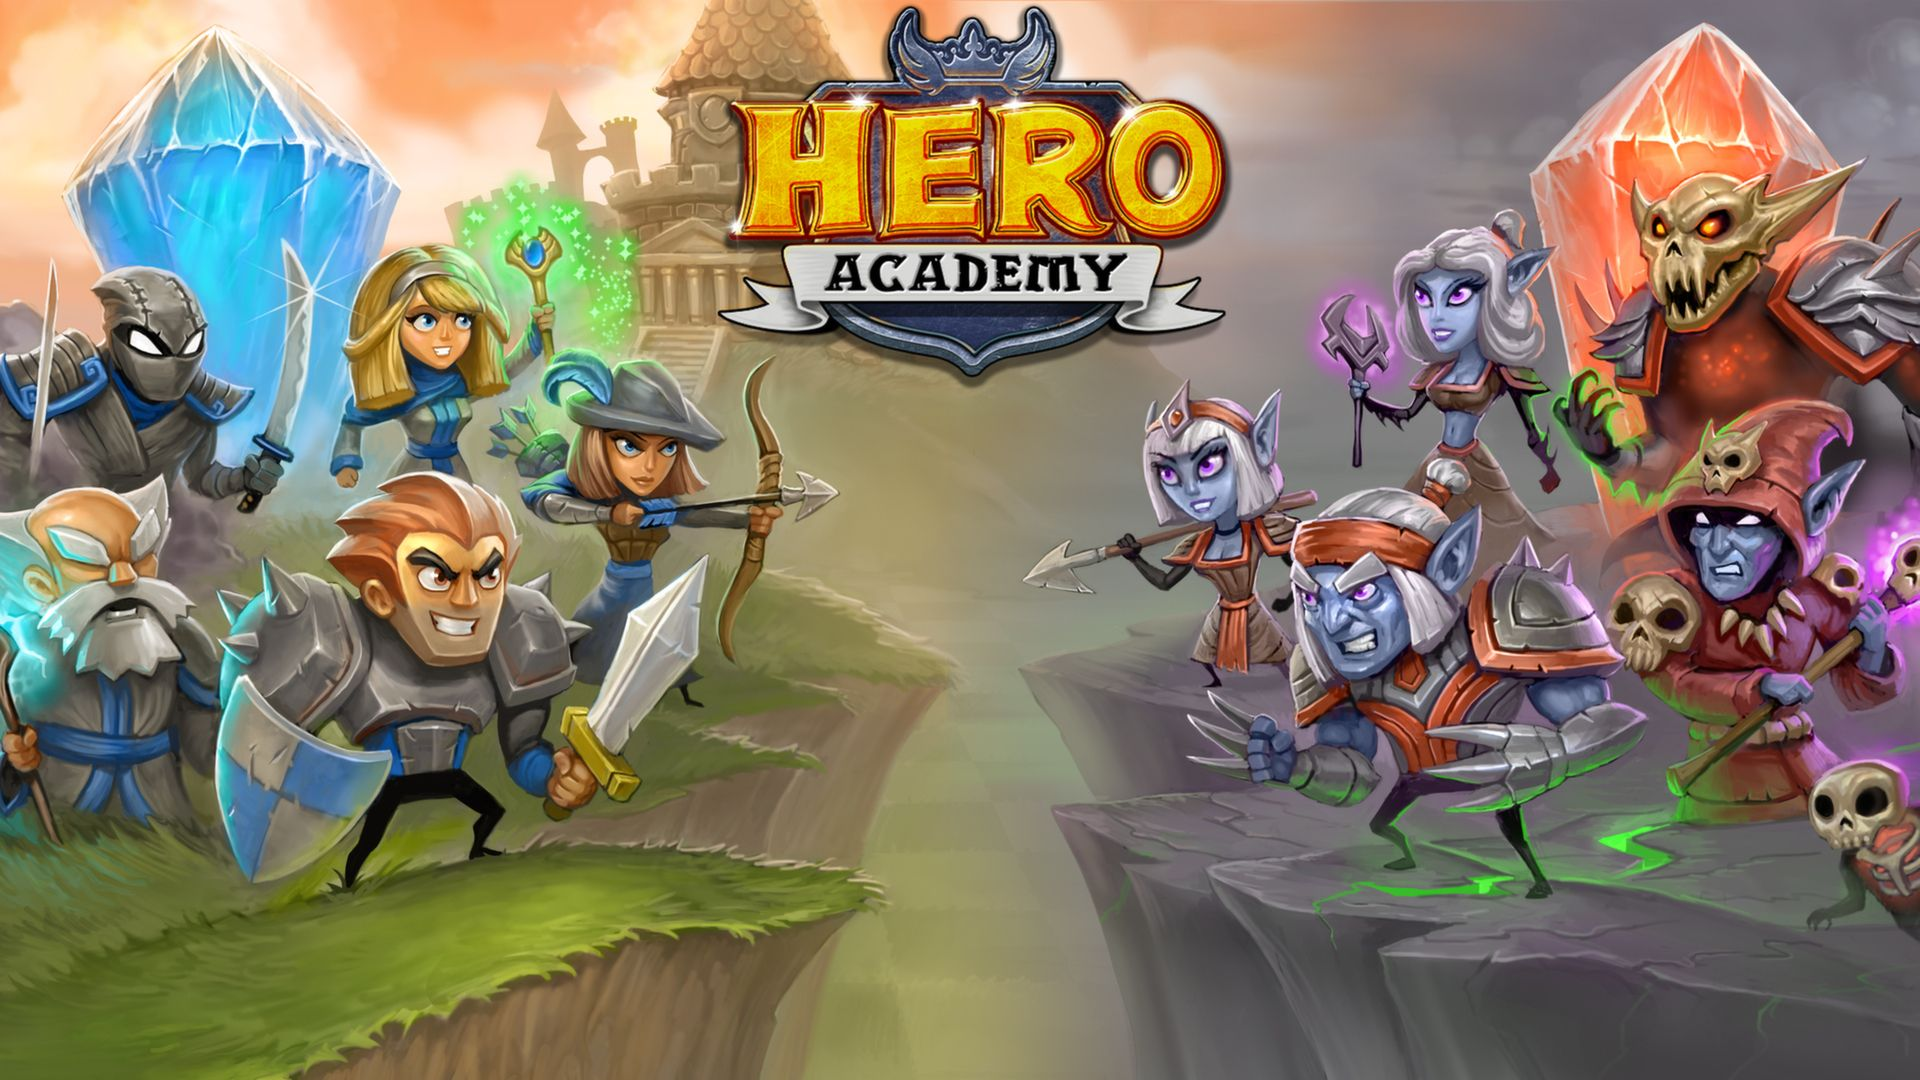 Hero Academy on Steam Game download free, Pc games